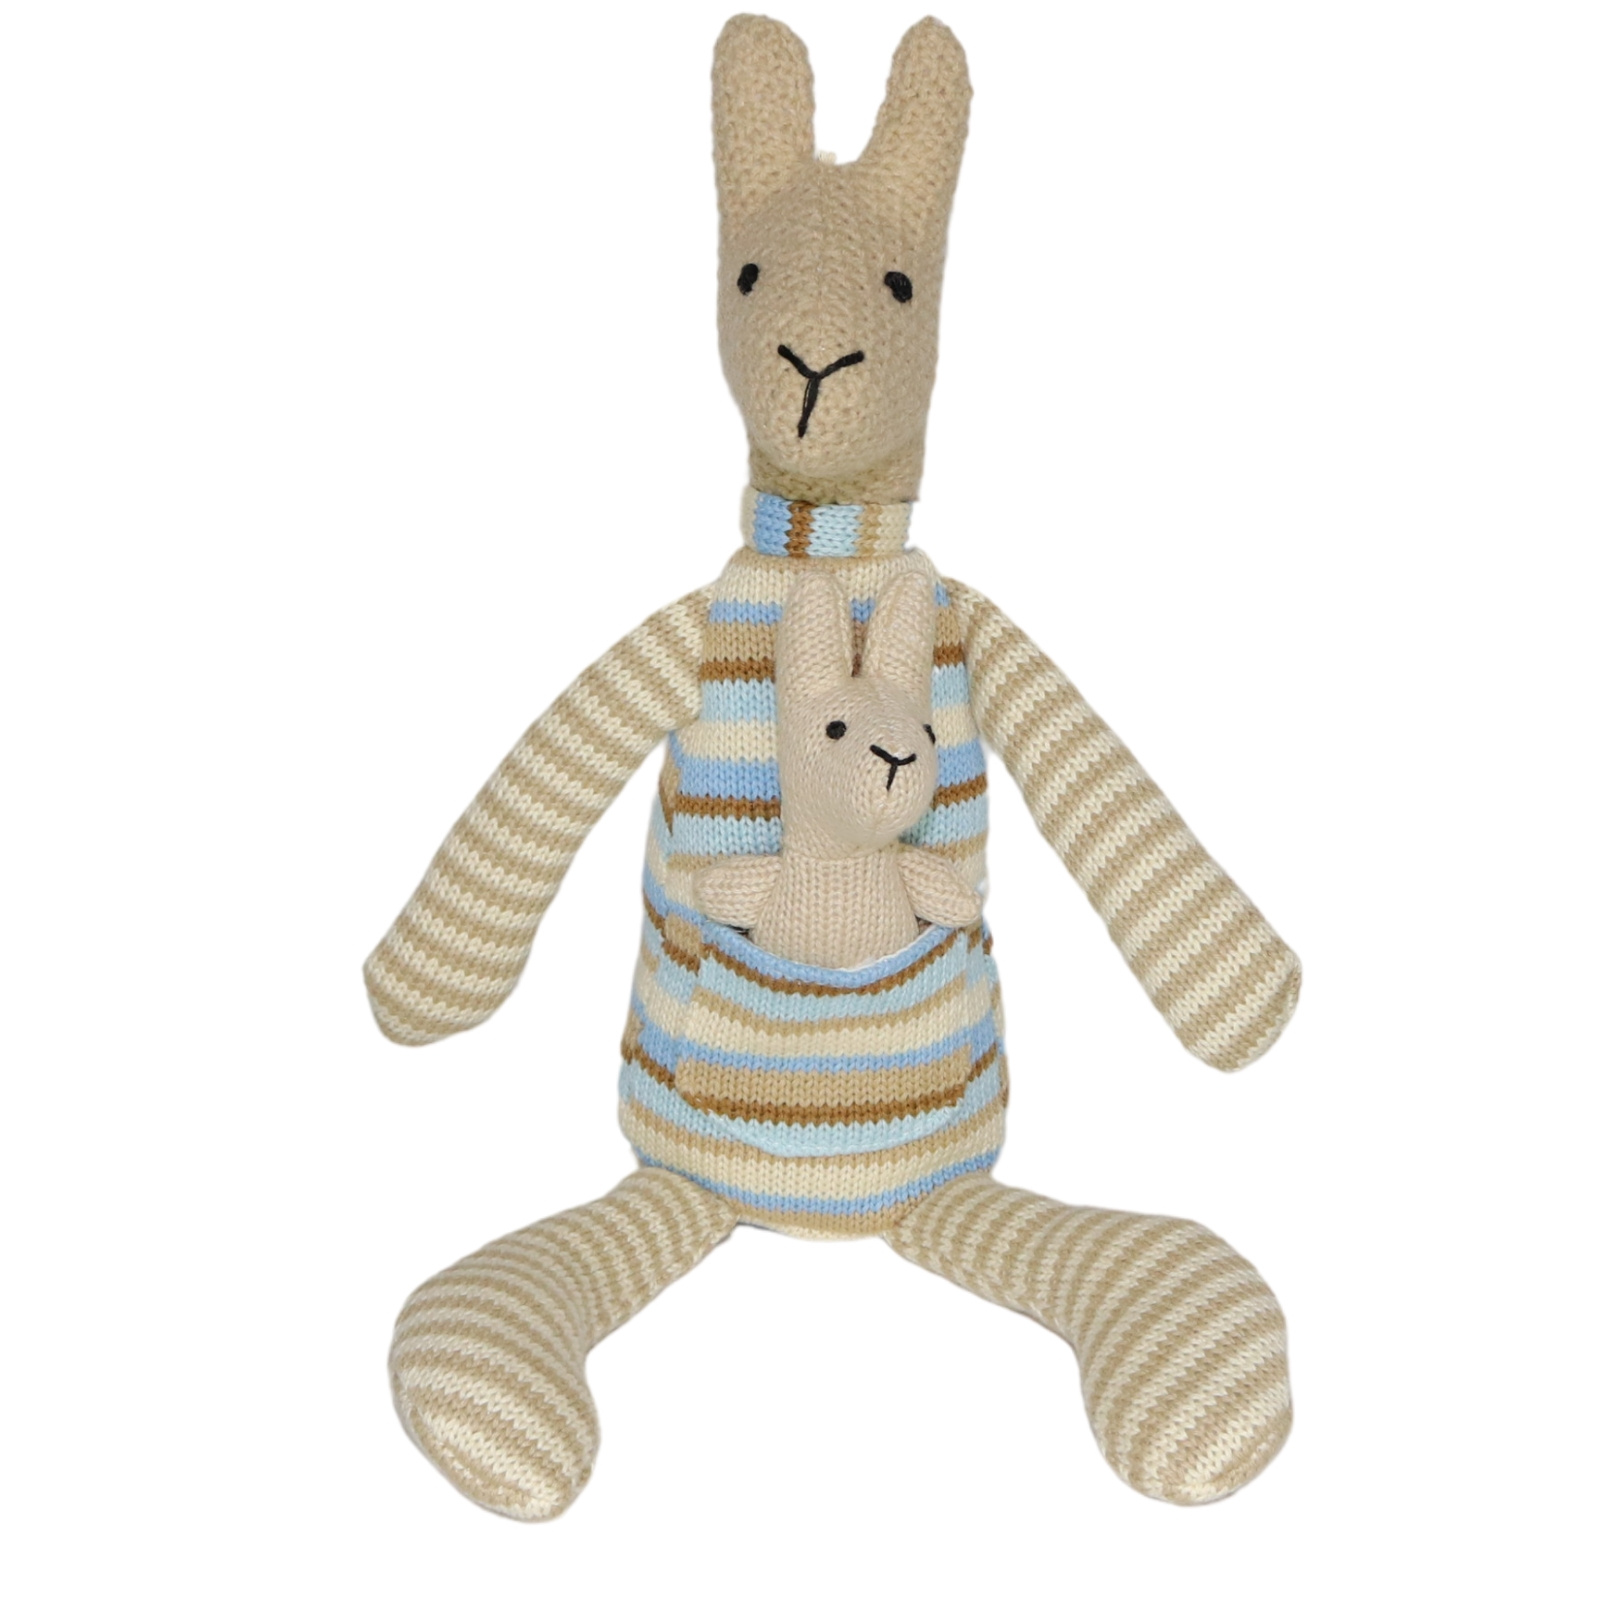 Plush Toy Kangaroo Amp Baby Joey Blue Stripe